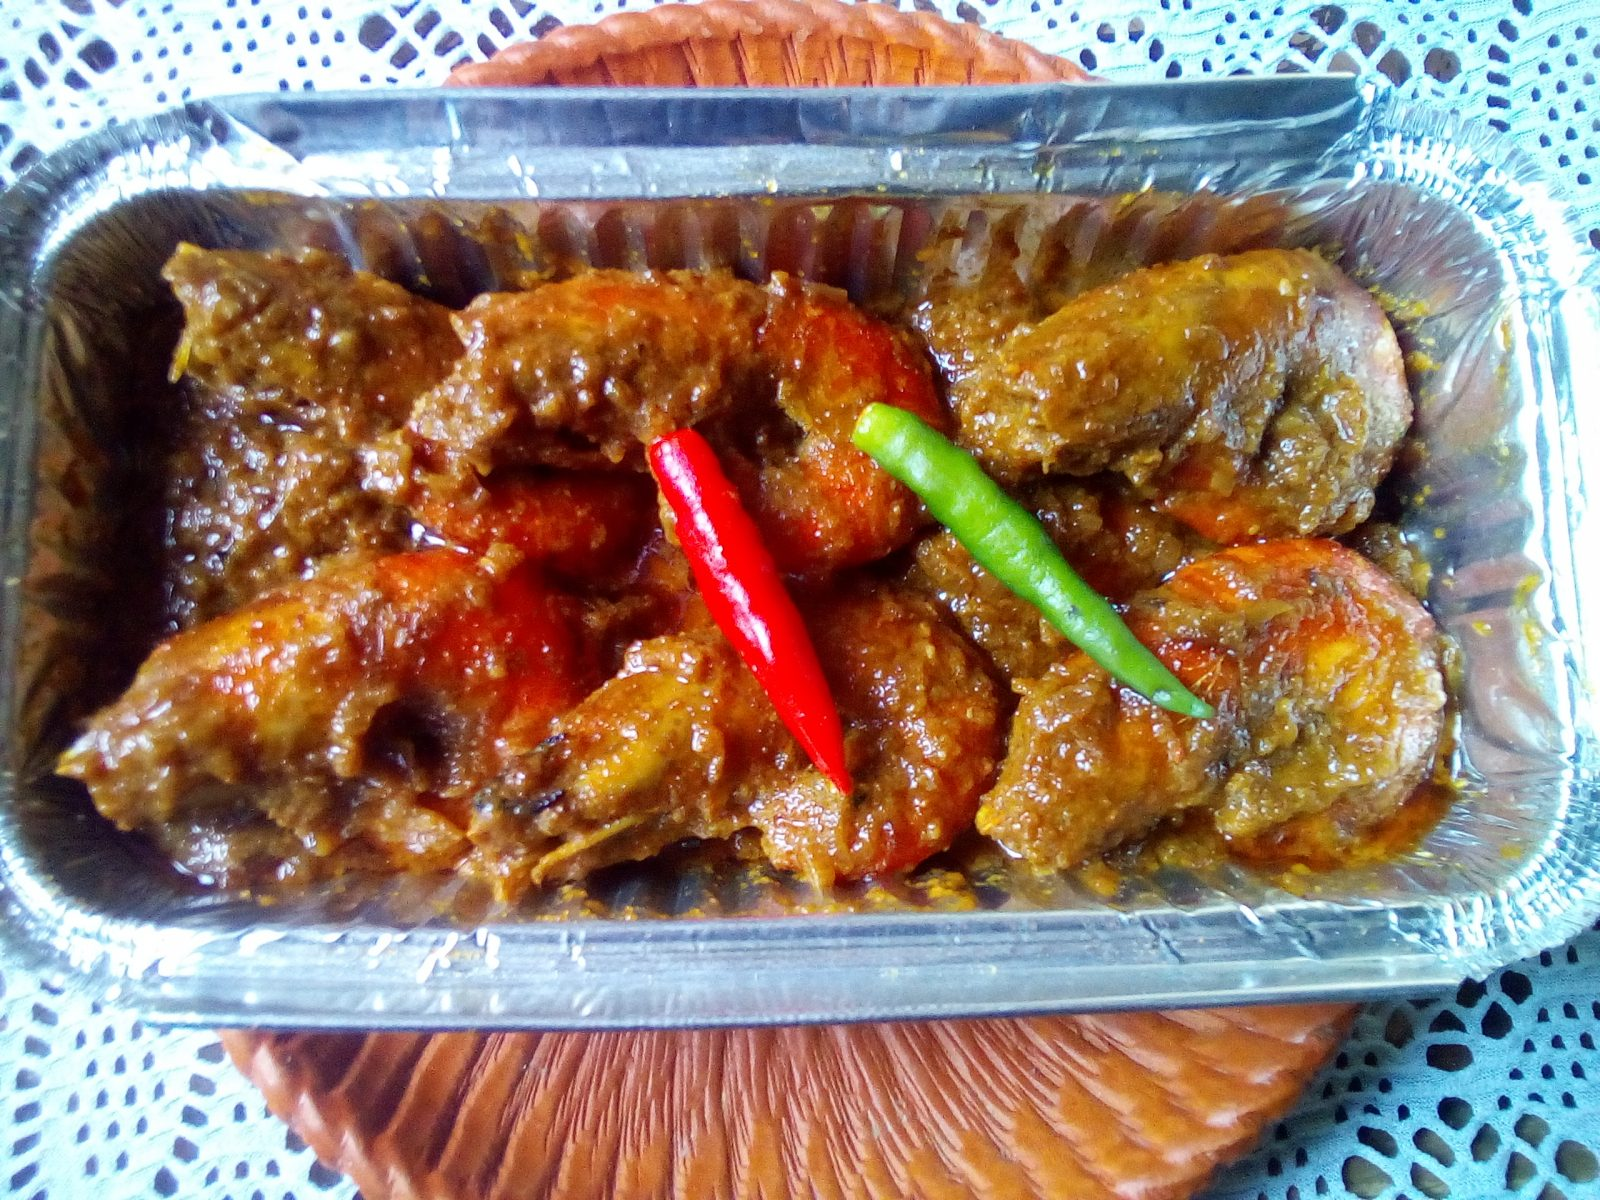 Cingri Vuna (Prawn Curry) from Sompurna Rannaghor